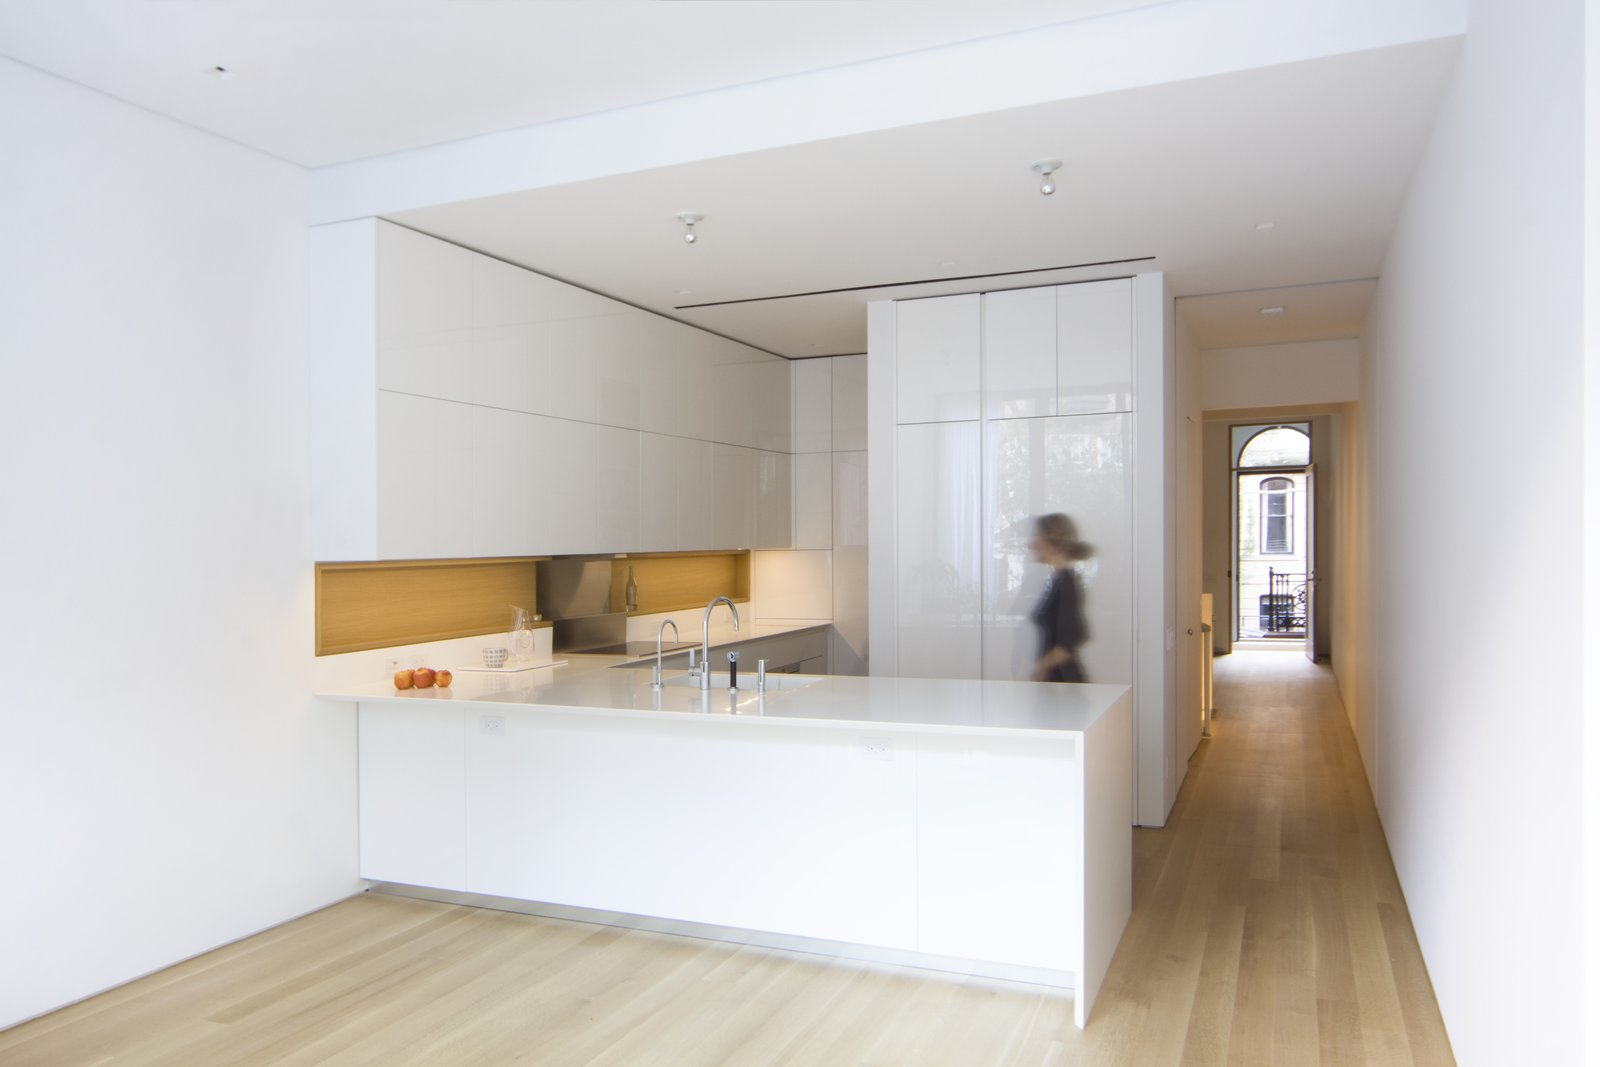 Kitchen, Engineered Quartz Counter, White Cabinet, Light Hardwood Floor, Ceiling Lighting, and Undermount Sink The kitchen has views to the historic main entrance and features lacquered cabinets and an integrated wooden niche custom-designed by the architects with GD Cucine. Matching Corian countertops and an integrated sink maintain a minimal aesthetic alongside appliances by Gaggenau and Miele.  White Oak by Maura Lucking